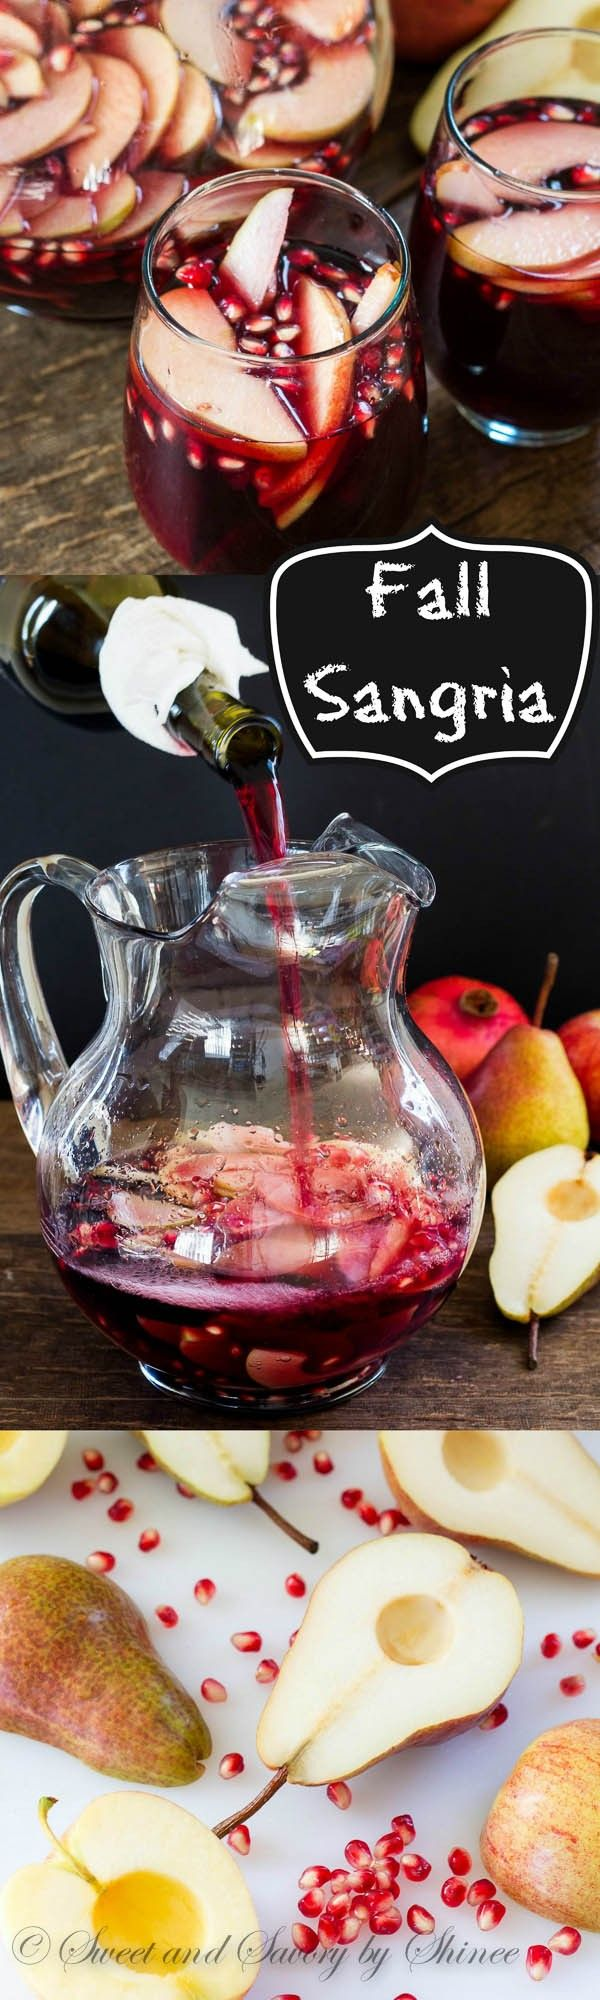 My fall sangria, filled with apples, pears and pomegranates, is absolutely delicious drink you can enj